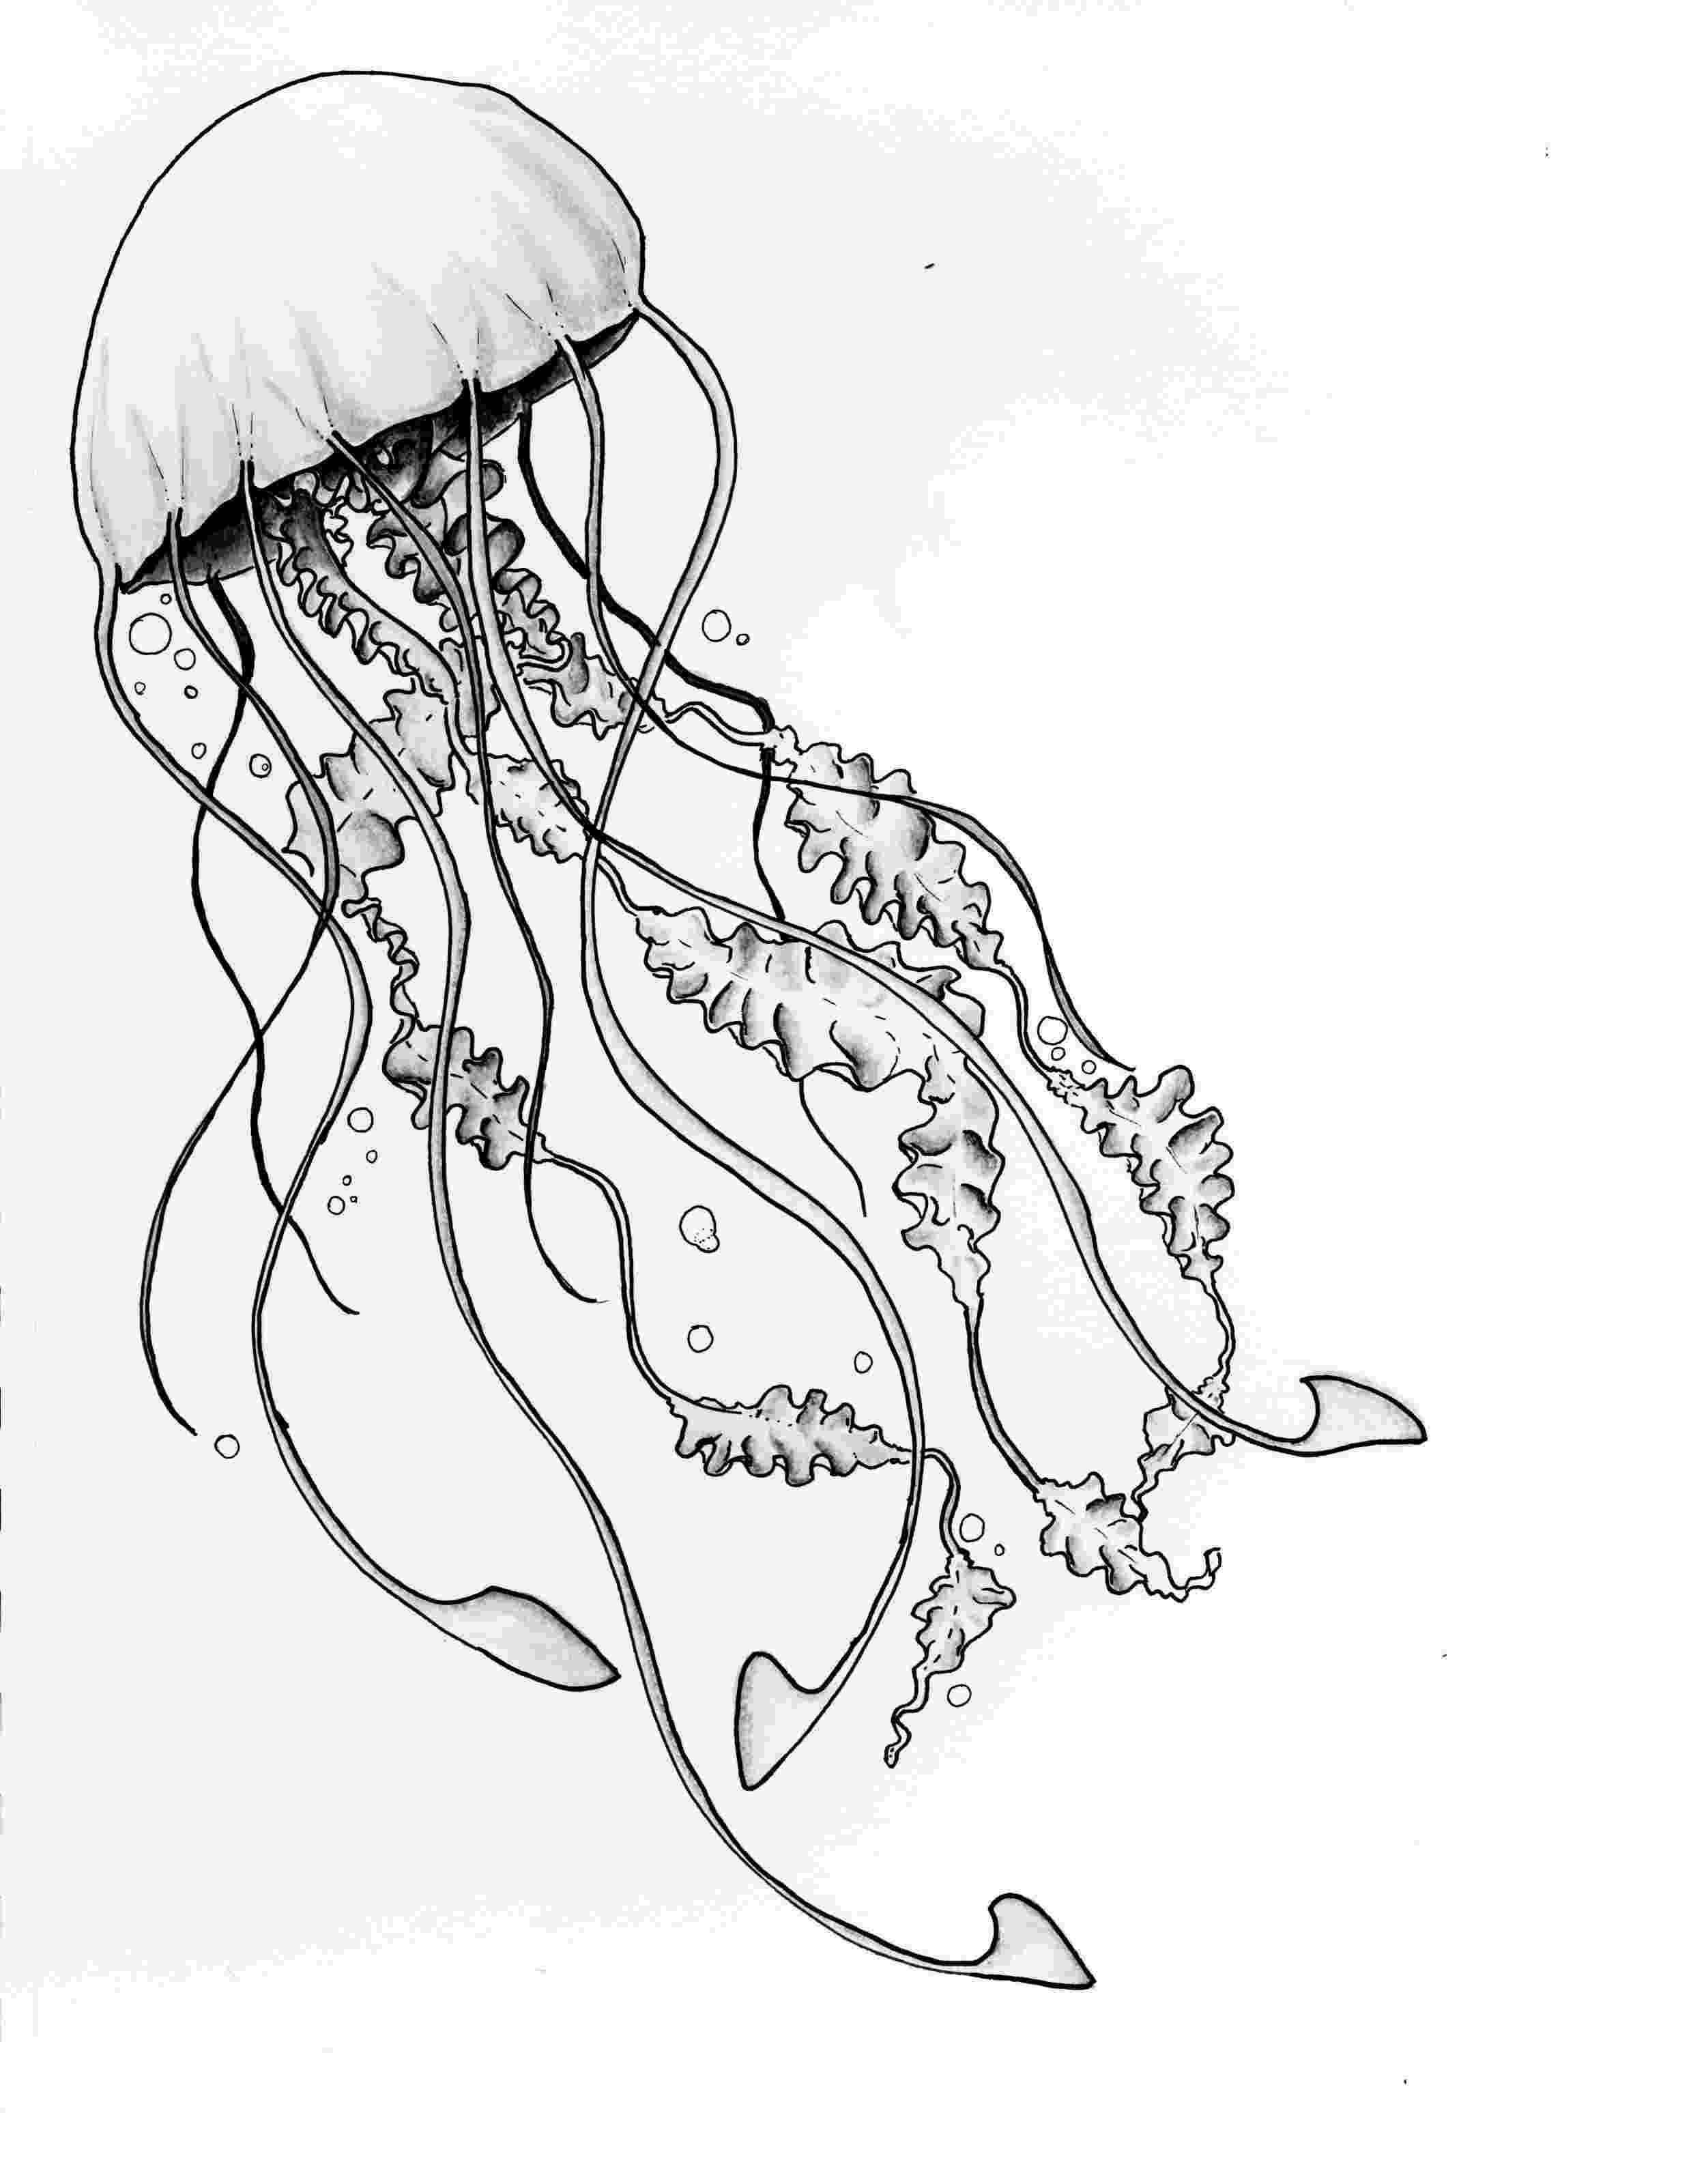 jellyfish sketch how to draw a jellyfish really easy drawing tutorial jellyfish sketch